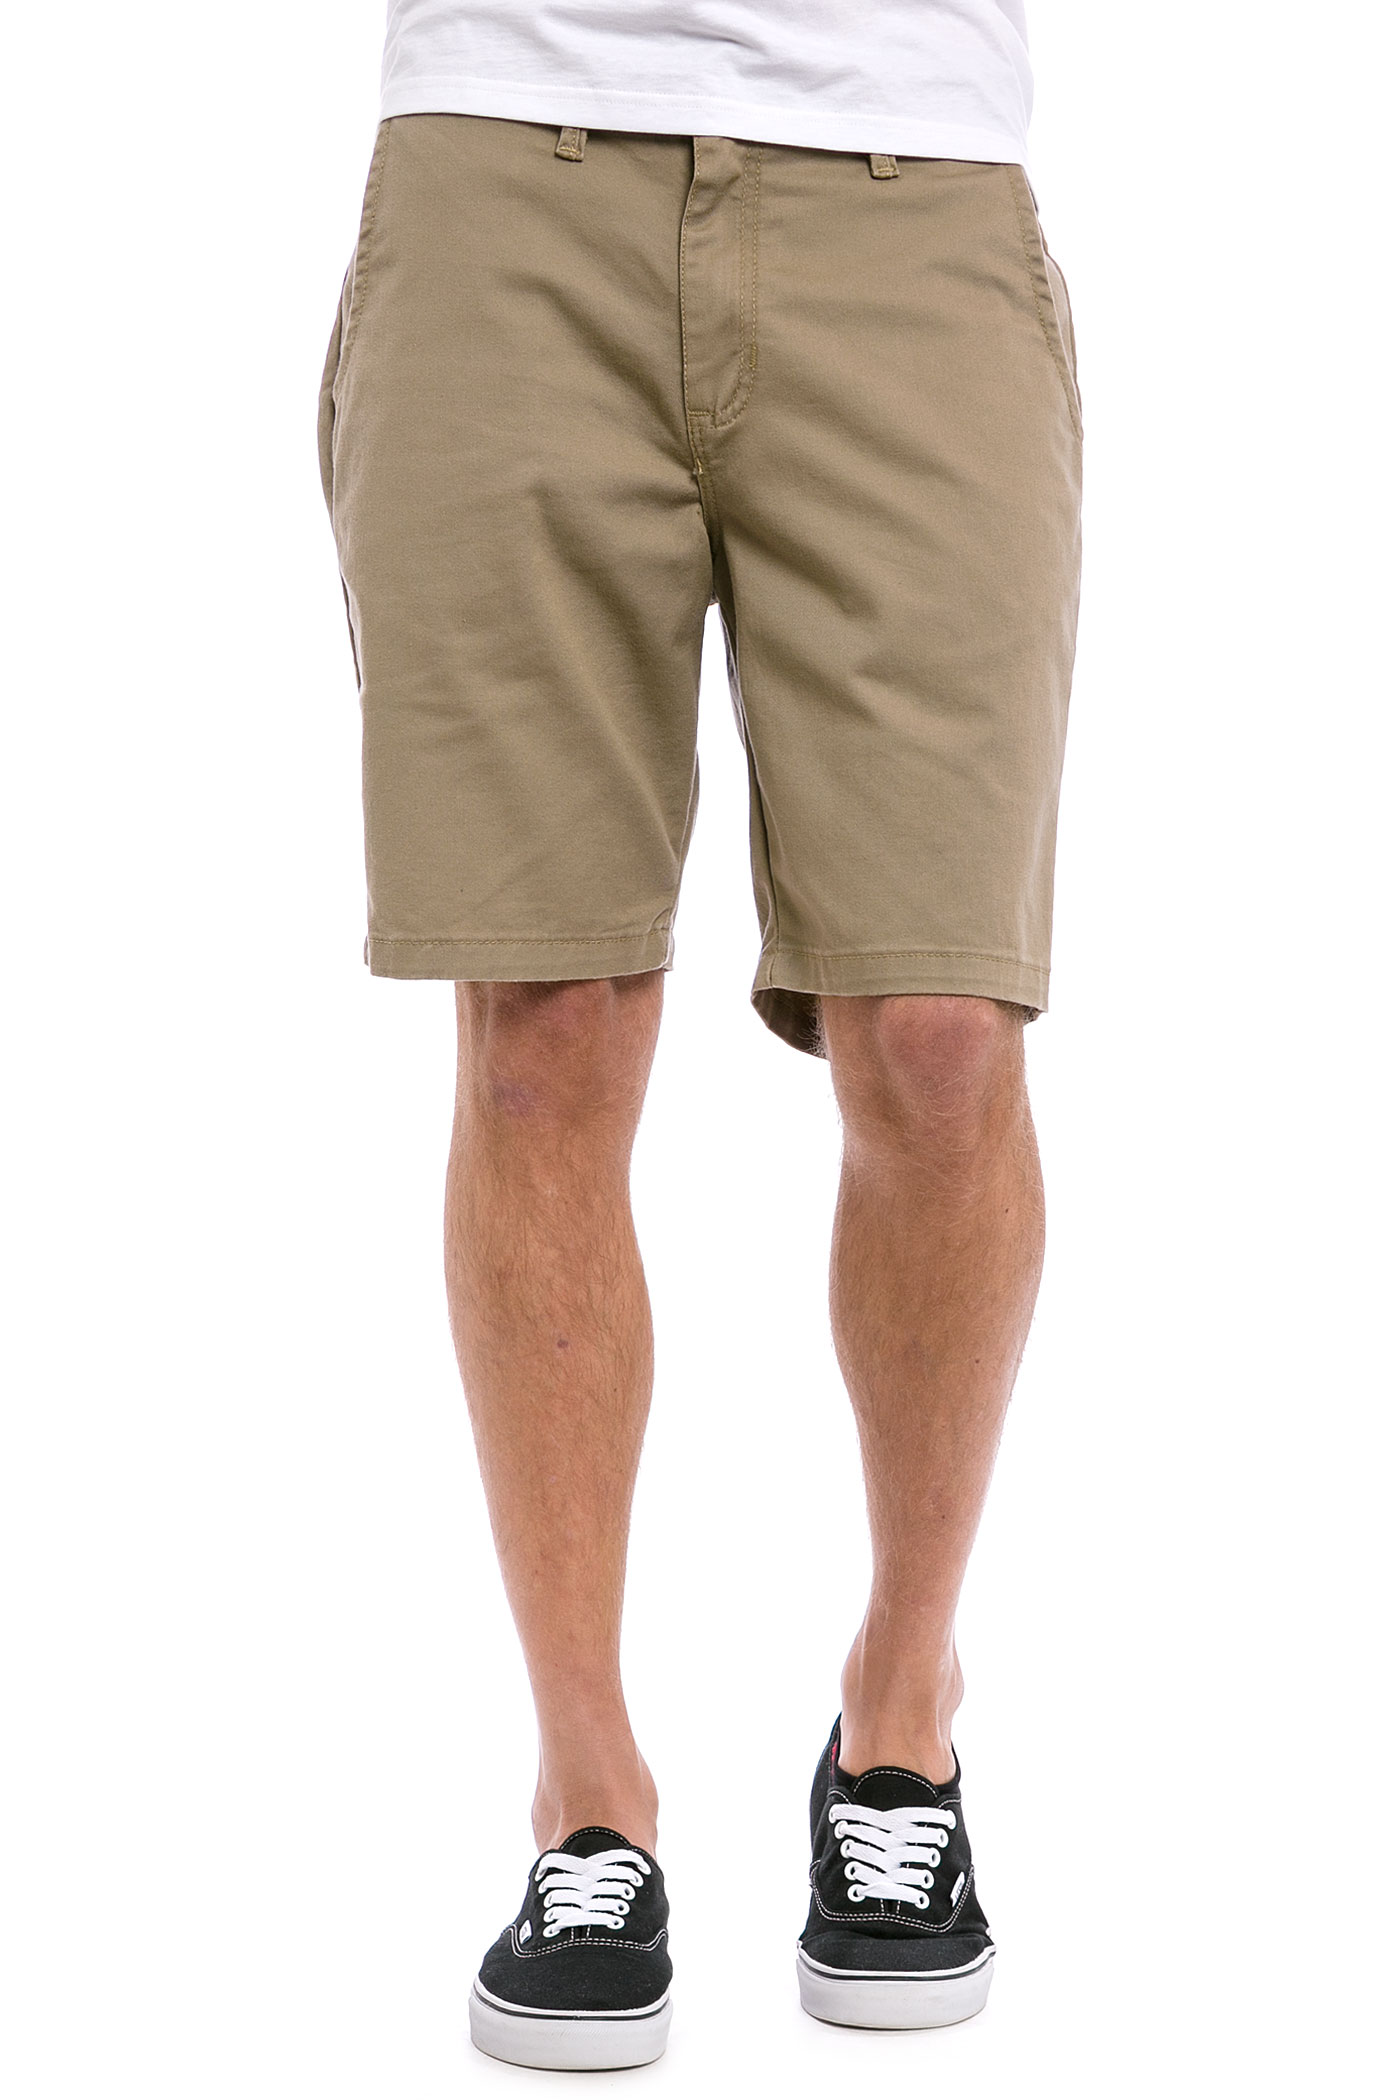 vans authentic with shorts